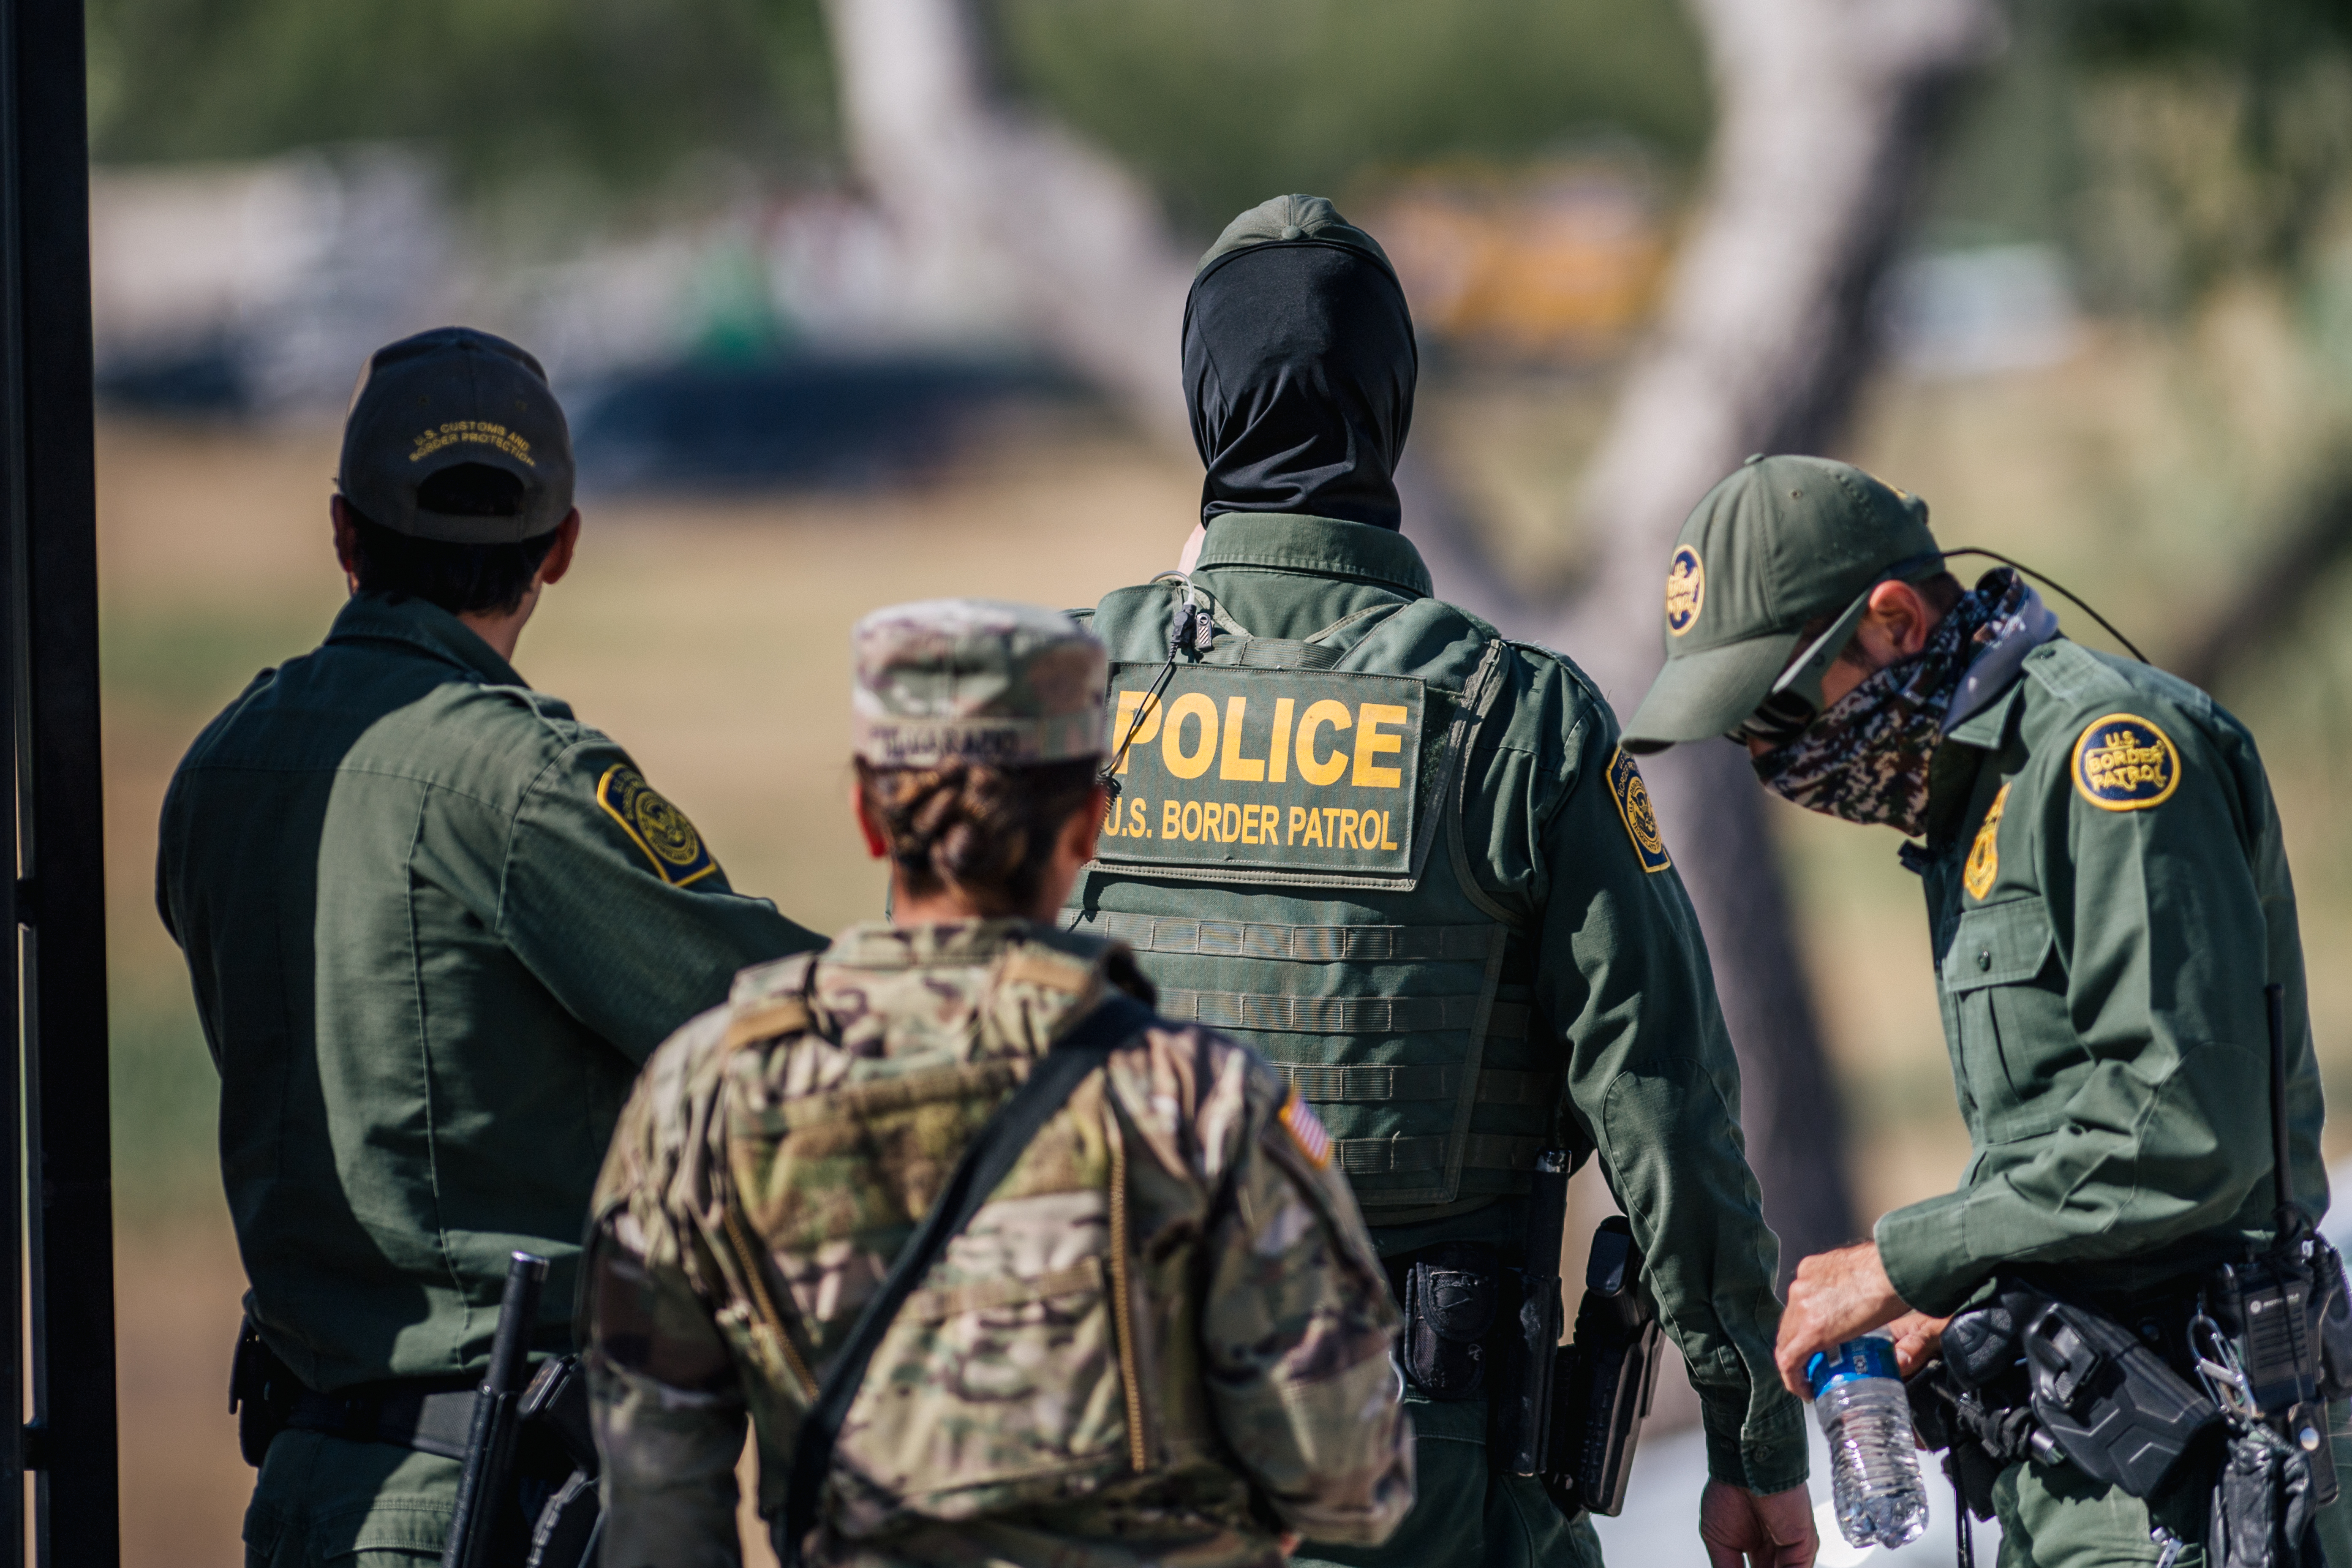 Border Patrol agents and members of the National Guard patrol a checkpoint entry near the Del Rio International Bridge in Del Rio, Texas. Thousands of immigrants, mostly from Haiti, seeking asylum have crossed the Rio Grande into the United States. (Photo by Brandon Bell/Getty Images)